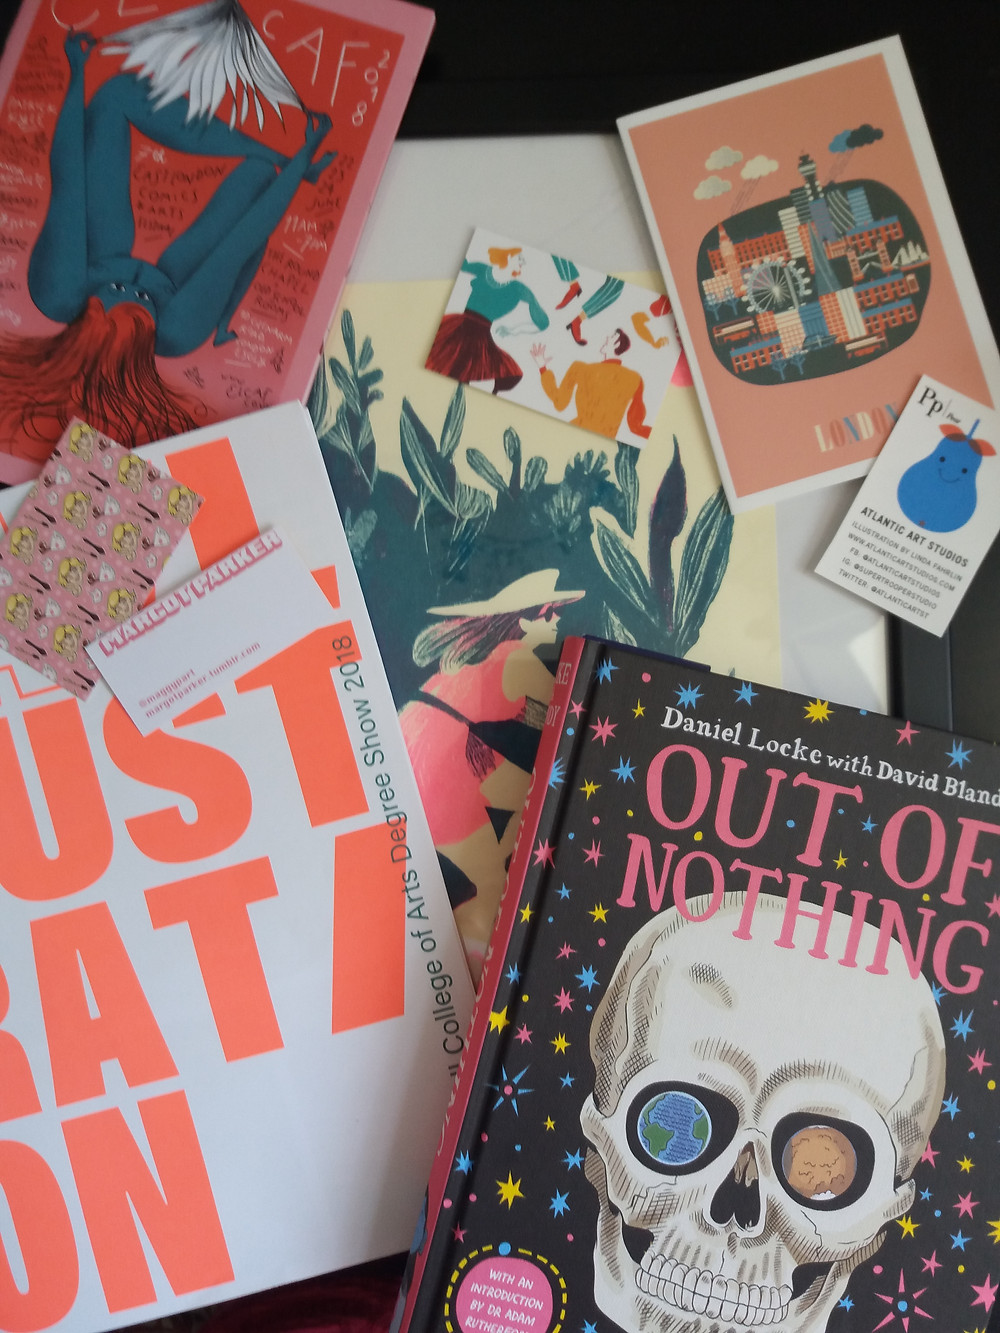 My haul from ELCAF, UAL degree shows, and the Illustrator's Summer Fair